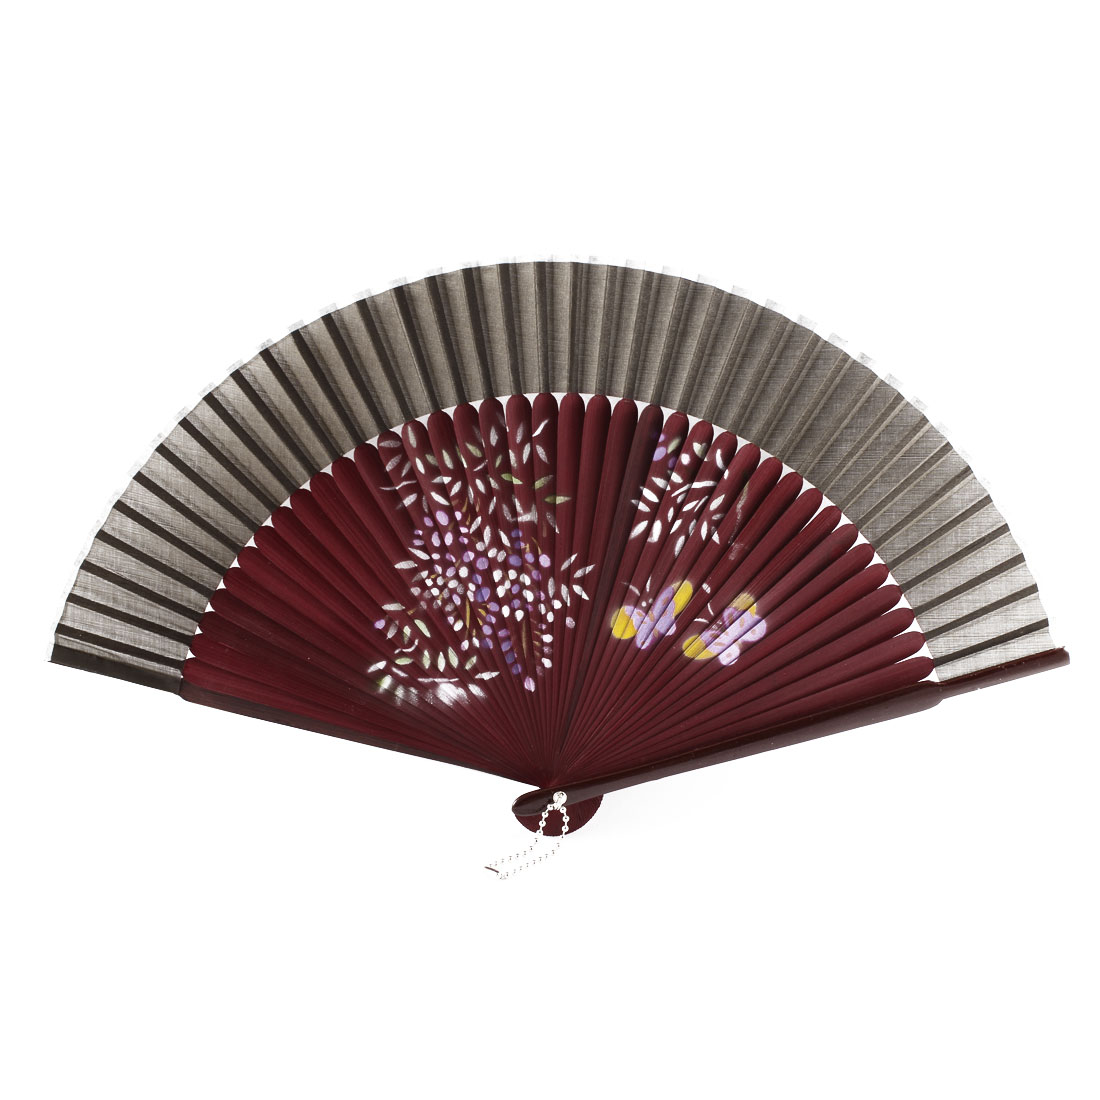 Chinese Style Lady Summer Dancing Party Hand Held Fan Gift Decoration Brown Burgundy